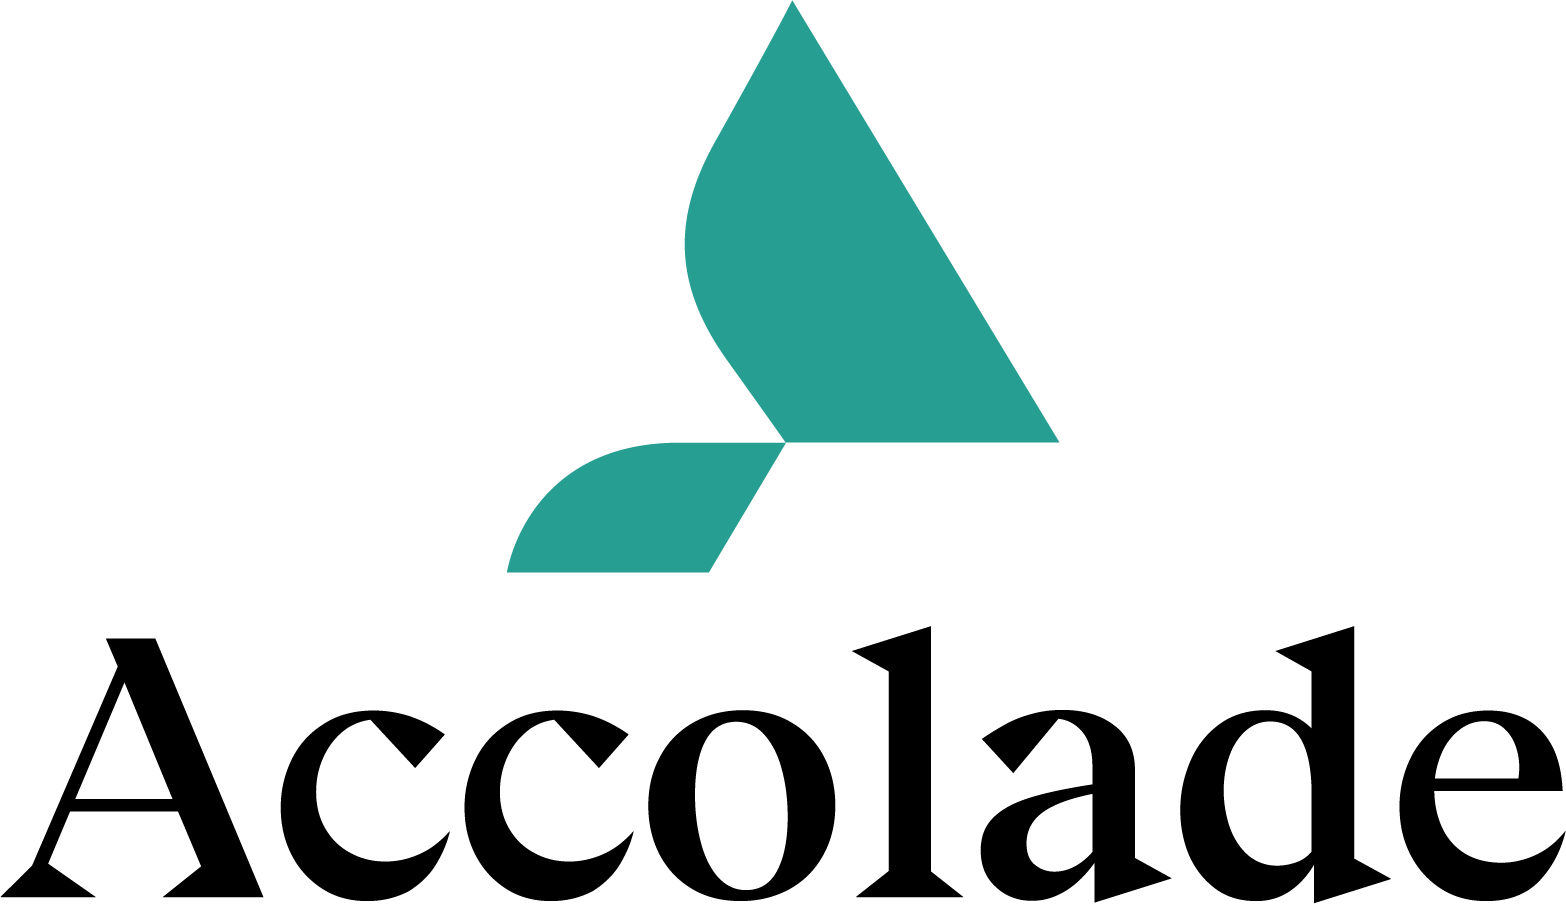 accolade_logotype_vert_nd_color